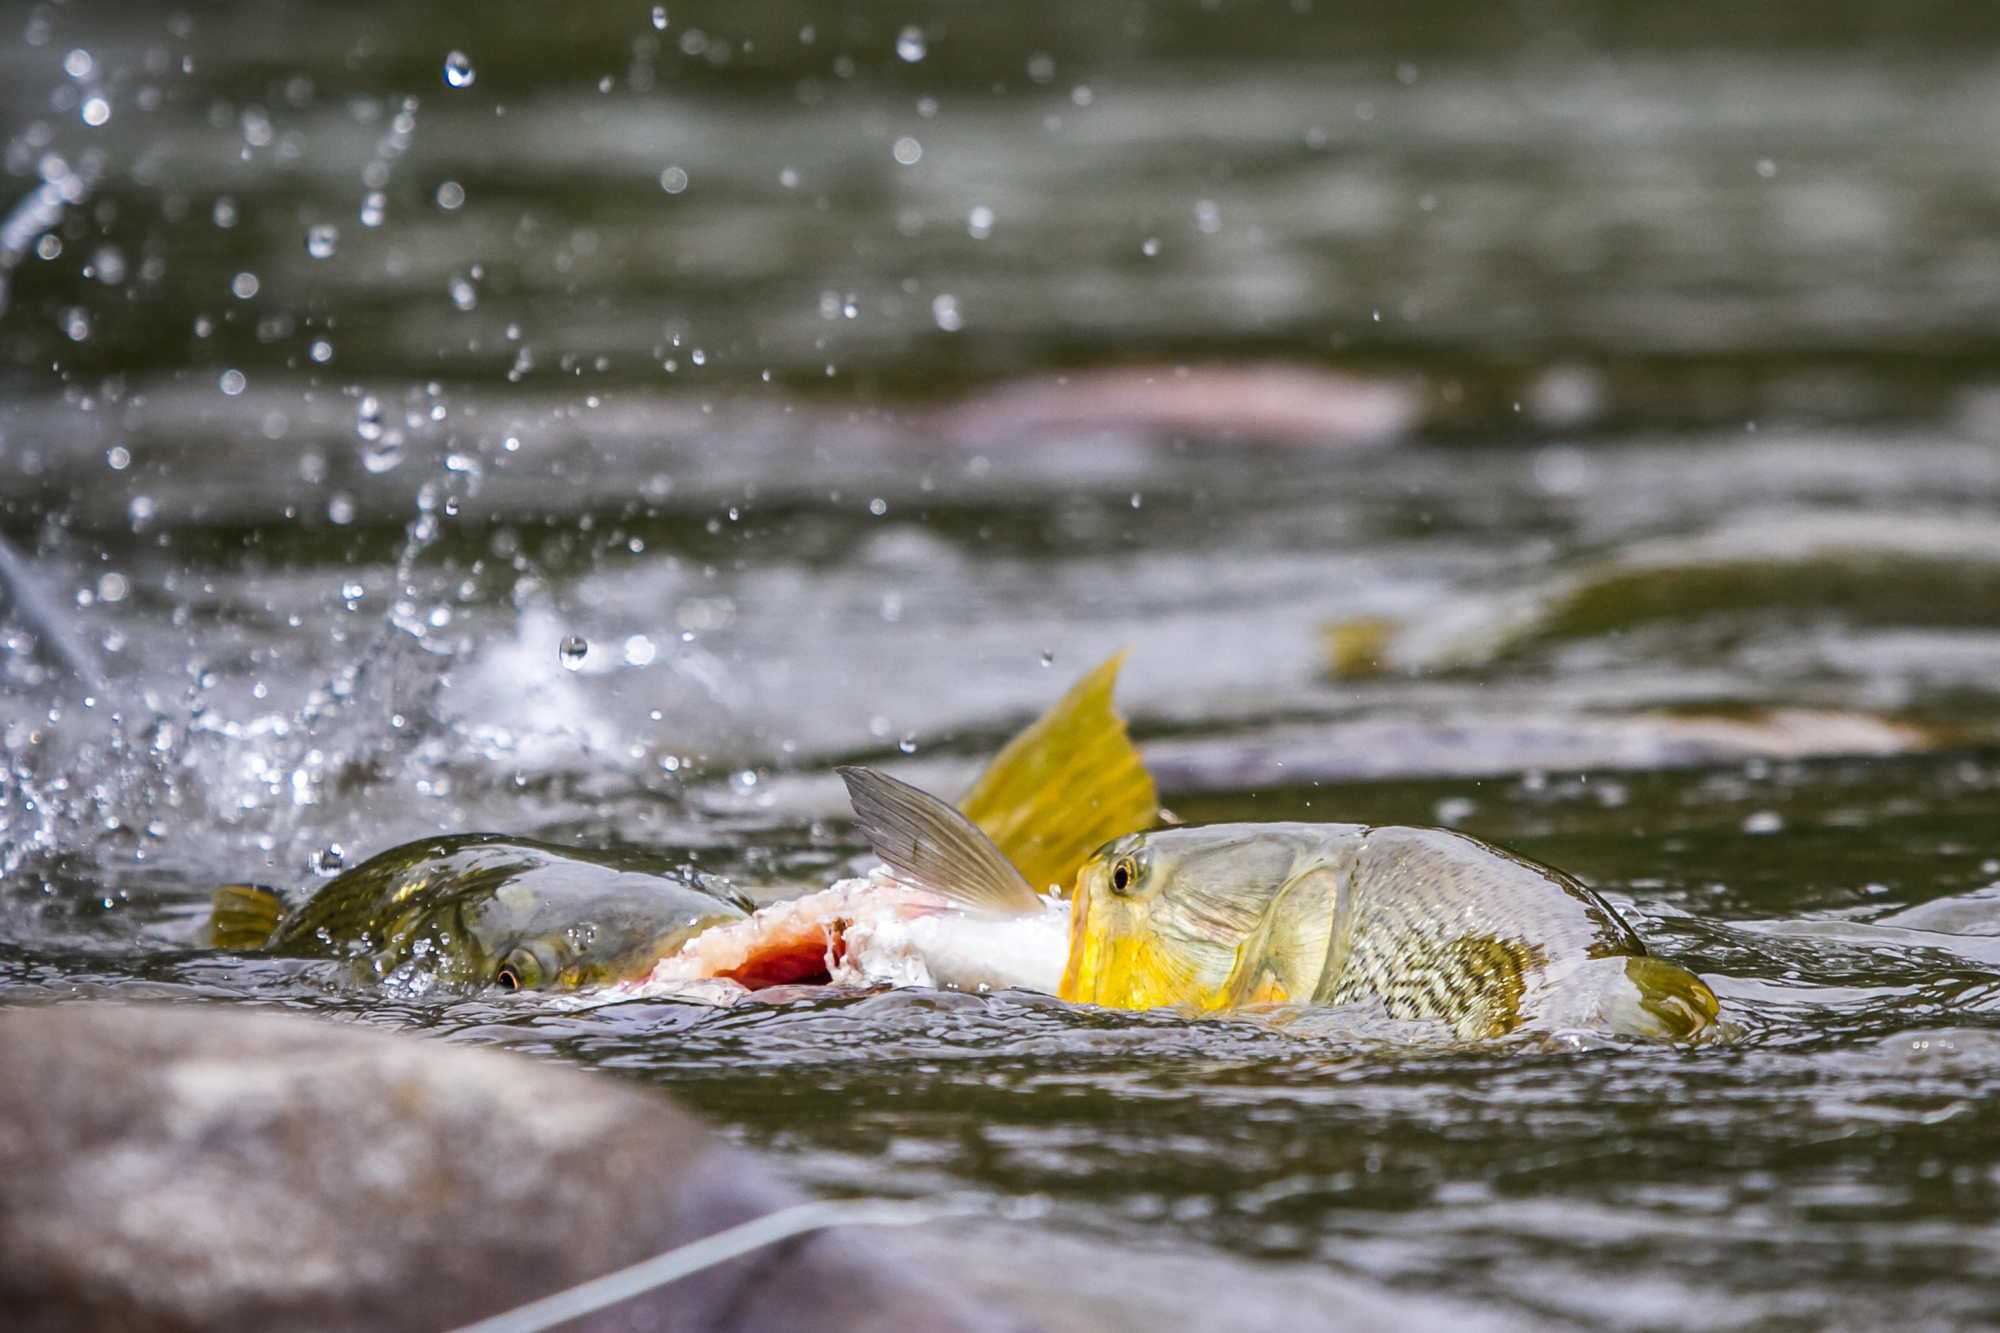 Two dorado - one sabalo. These golden dorado ultimately rip this fish apart and gorge themselves on an easy meal while an angler tries to present a fly to them. Of course they ignored the presentation.